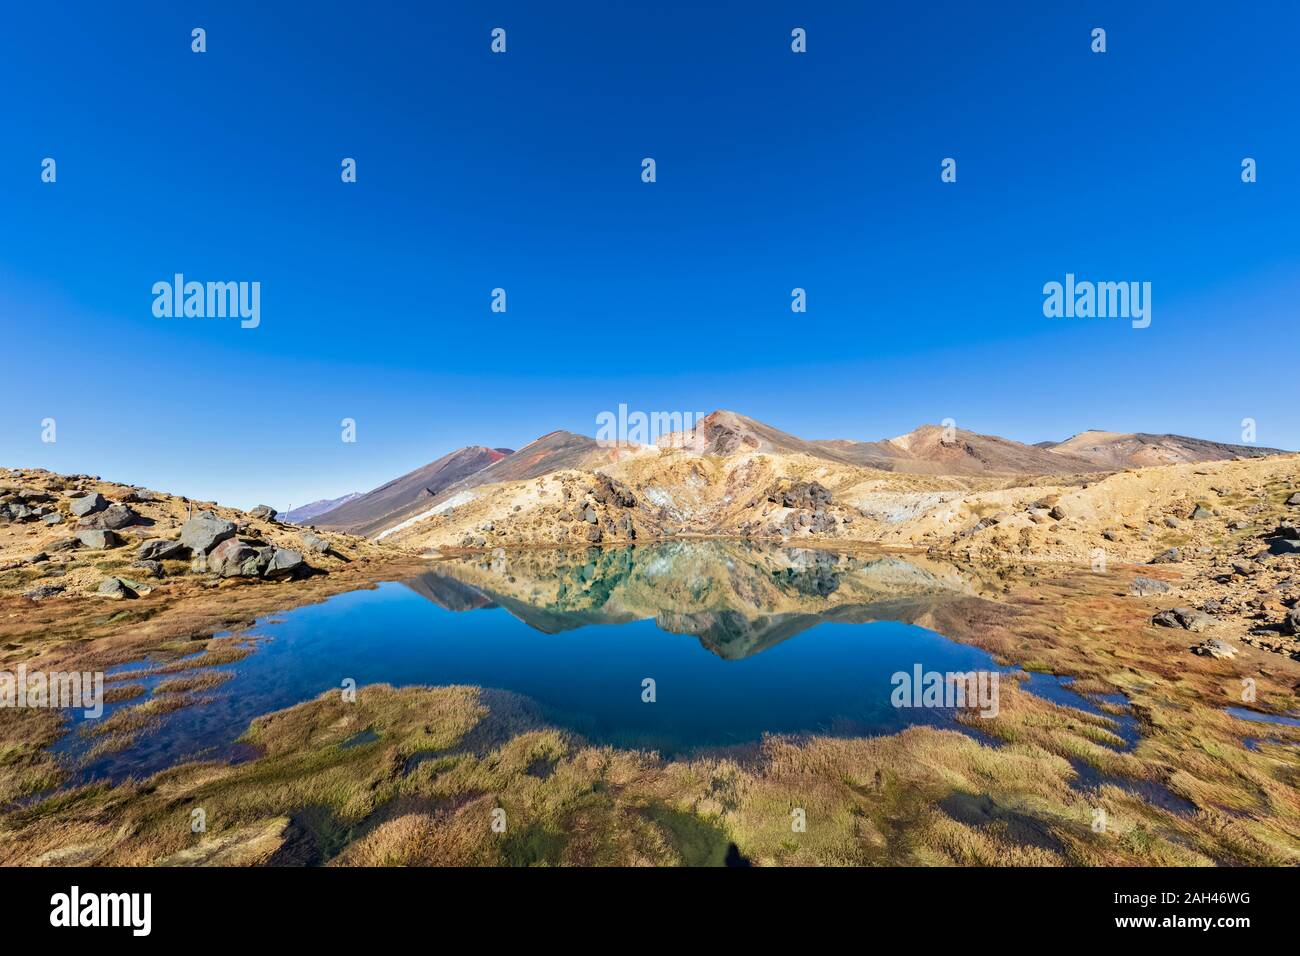 New Zealand, North Island, Clear blue sky over shiny lake in North Island Volcanic Plateau Stock Photo